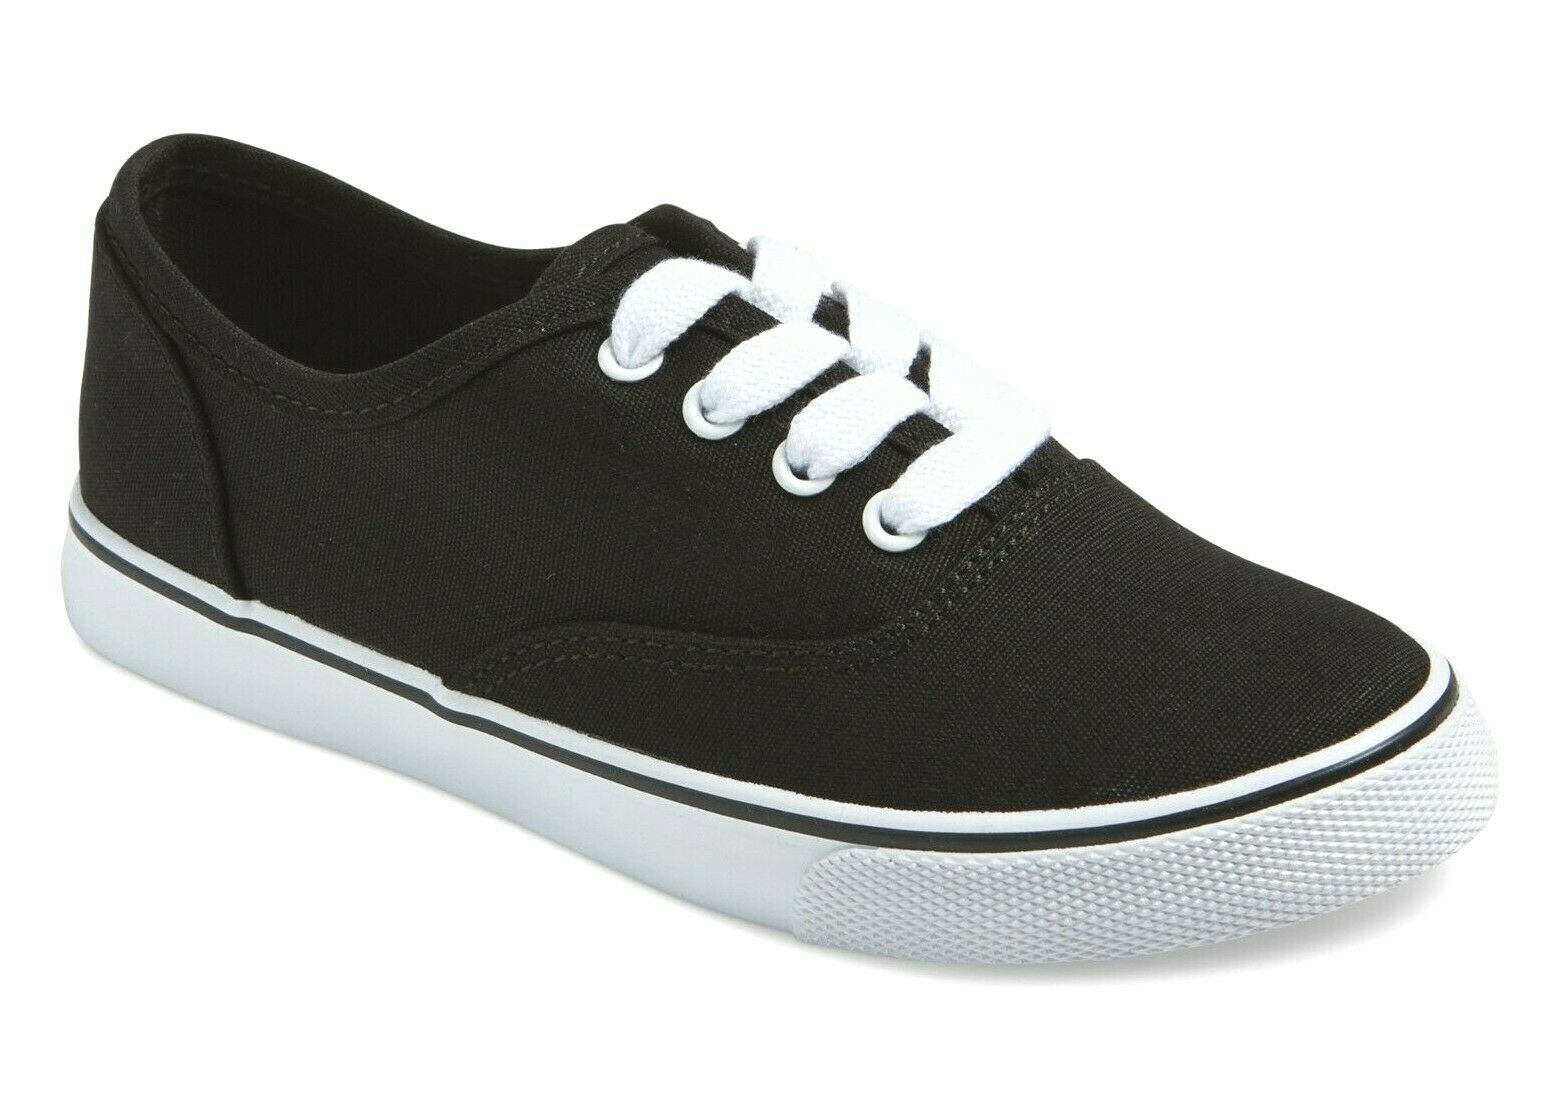 Cat & Jack Girls' Larina Black Canvas & White Lace Up Shoes Sneakers NWT